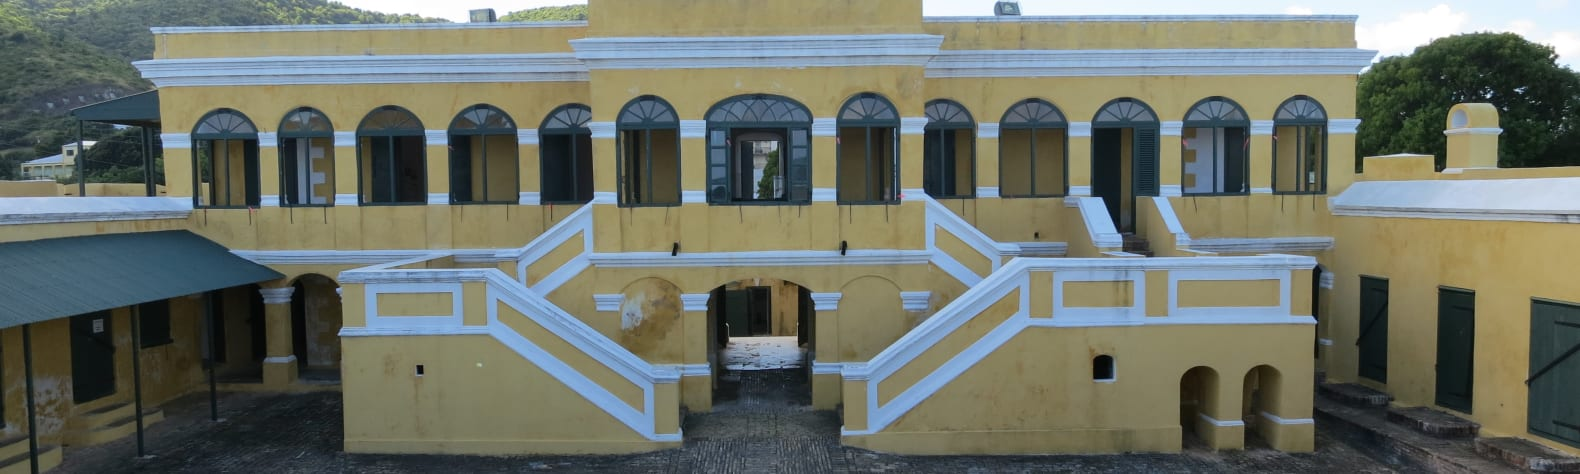 Christiansted National Historic Site